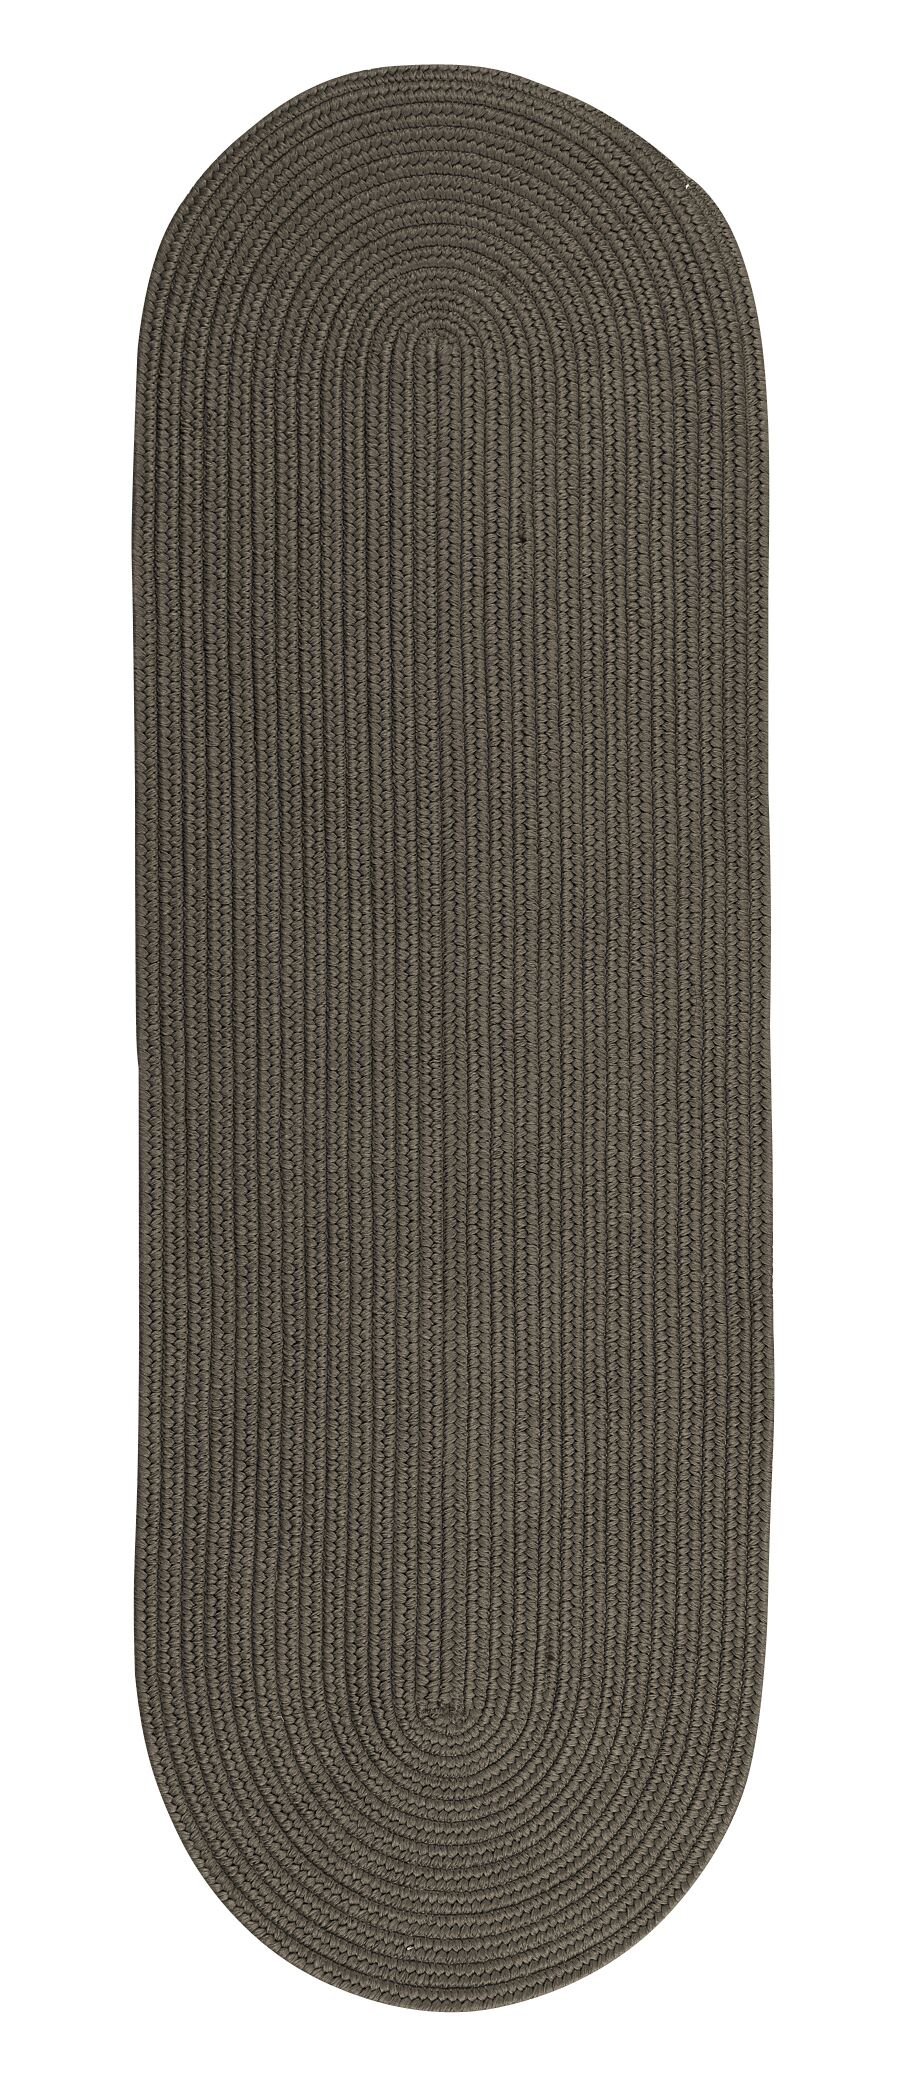 Wellbrock Reversible Hand-Braided Gray Indoor/Outdoor Area Rug Rug Size: Runner 2'4